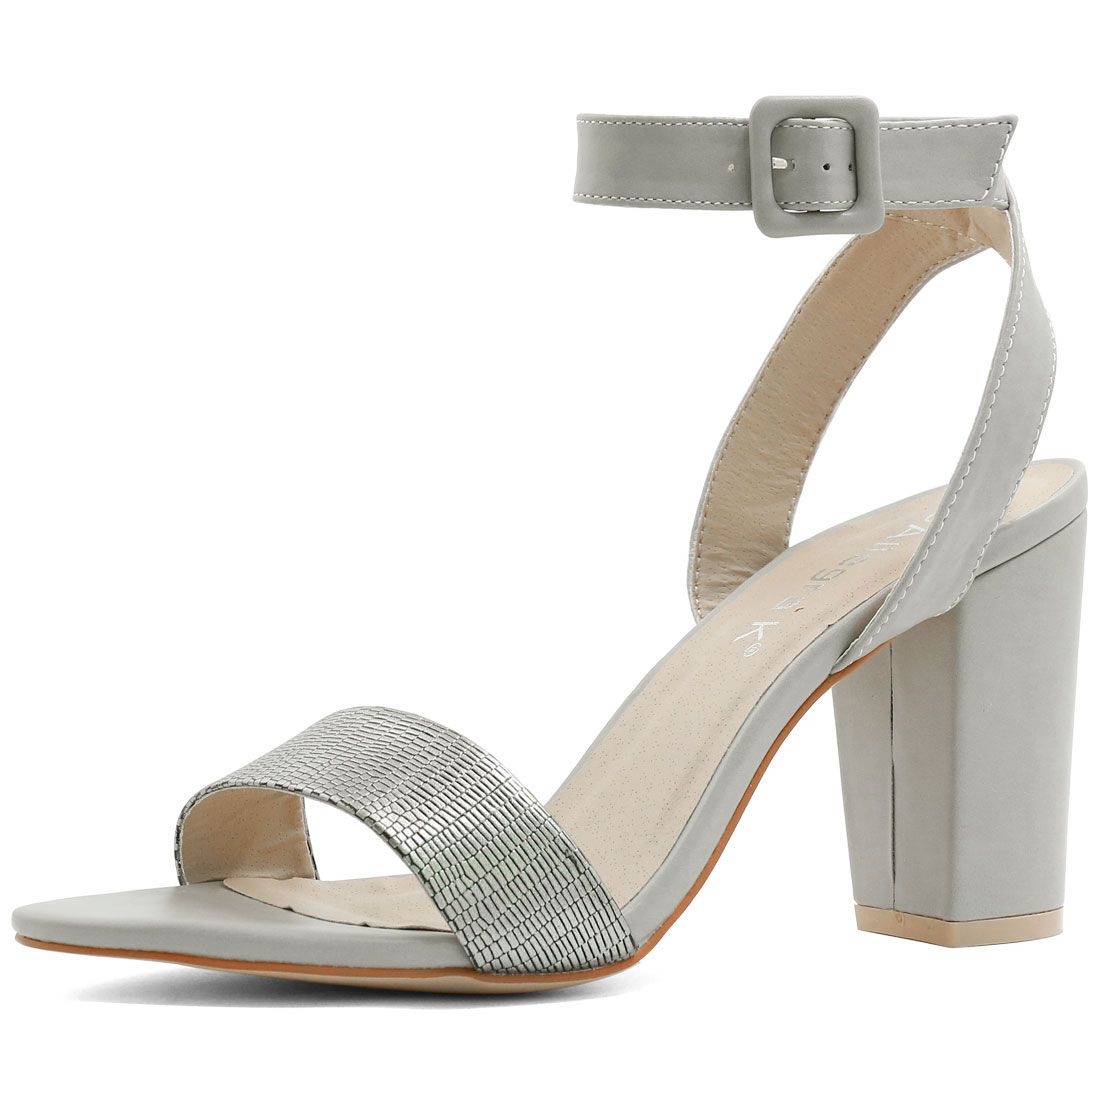 Woman Textured Vamp Chunky Heel Ankle Strap Sandals Silver US 6